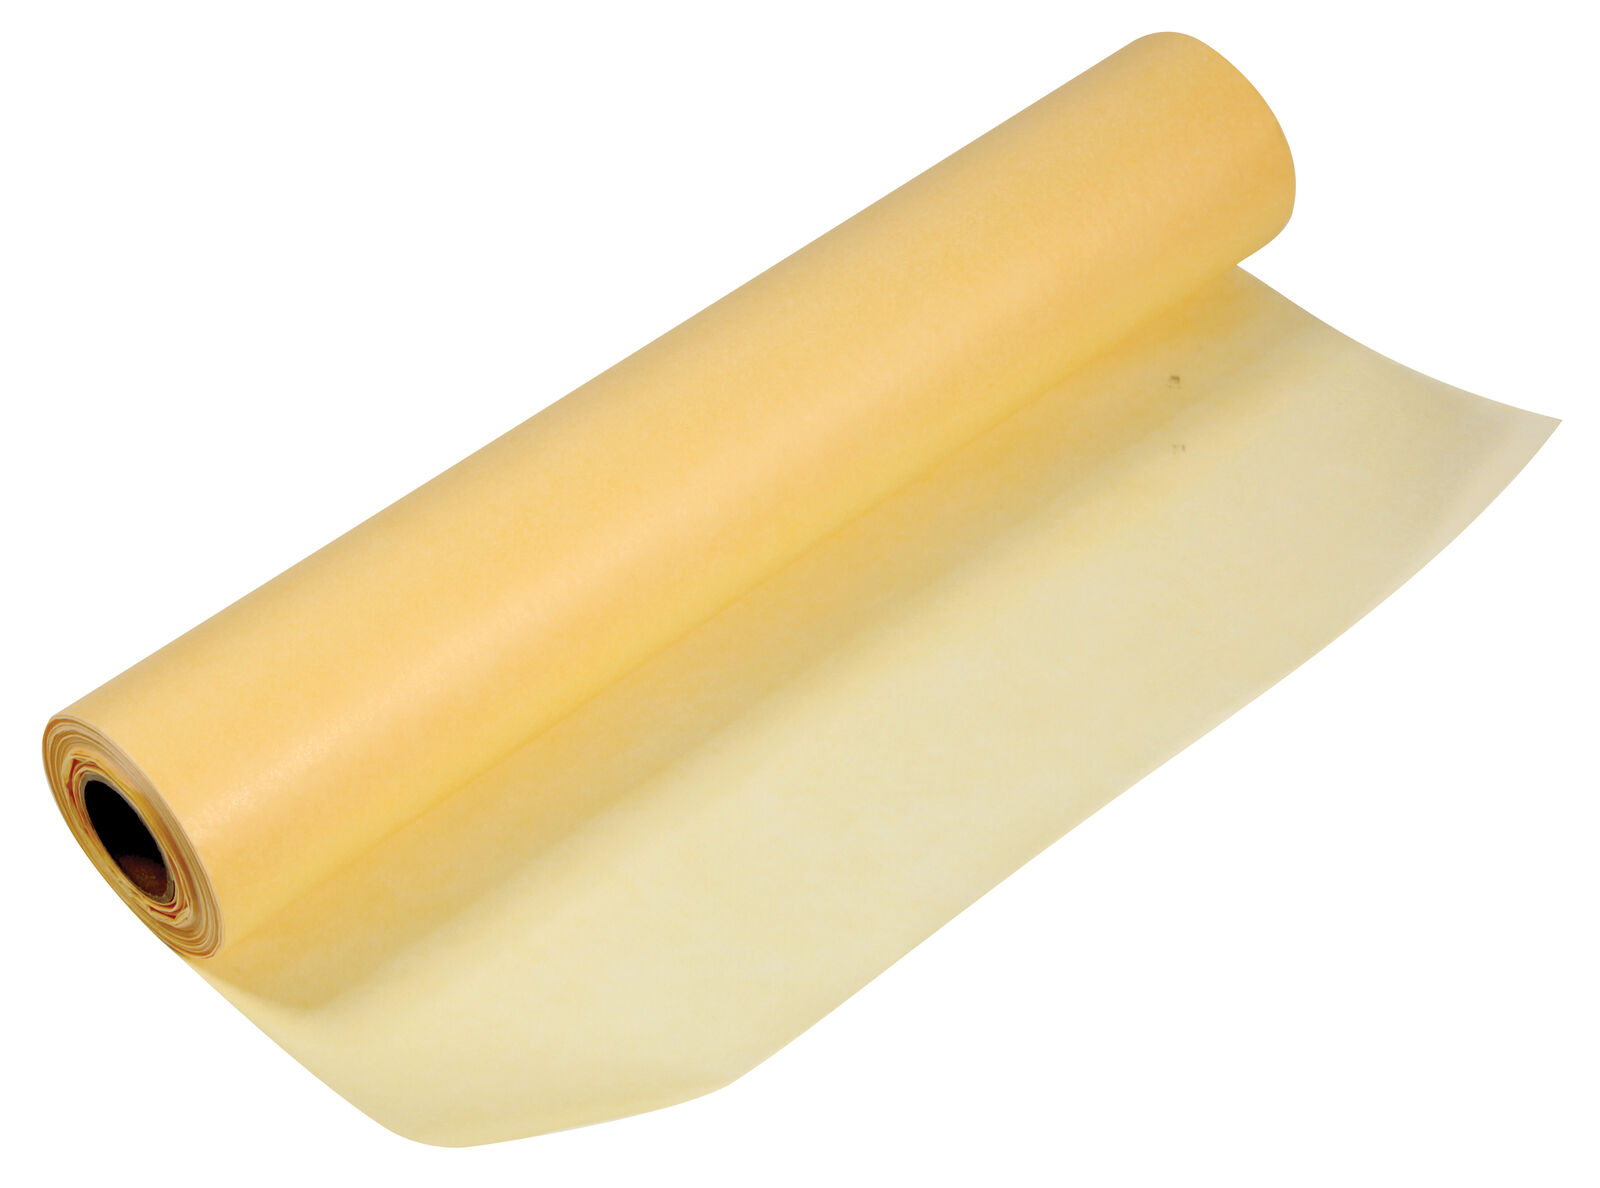 3 NEW ROLLS Alvin Lightweight Tracing Paper Roll 24 inches x 50 yards 55W-J